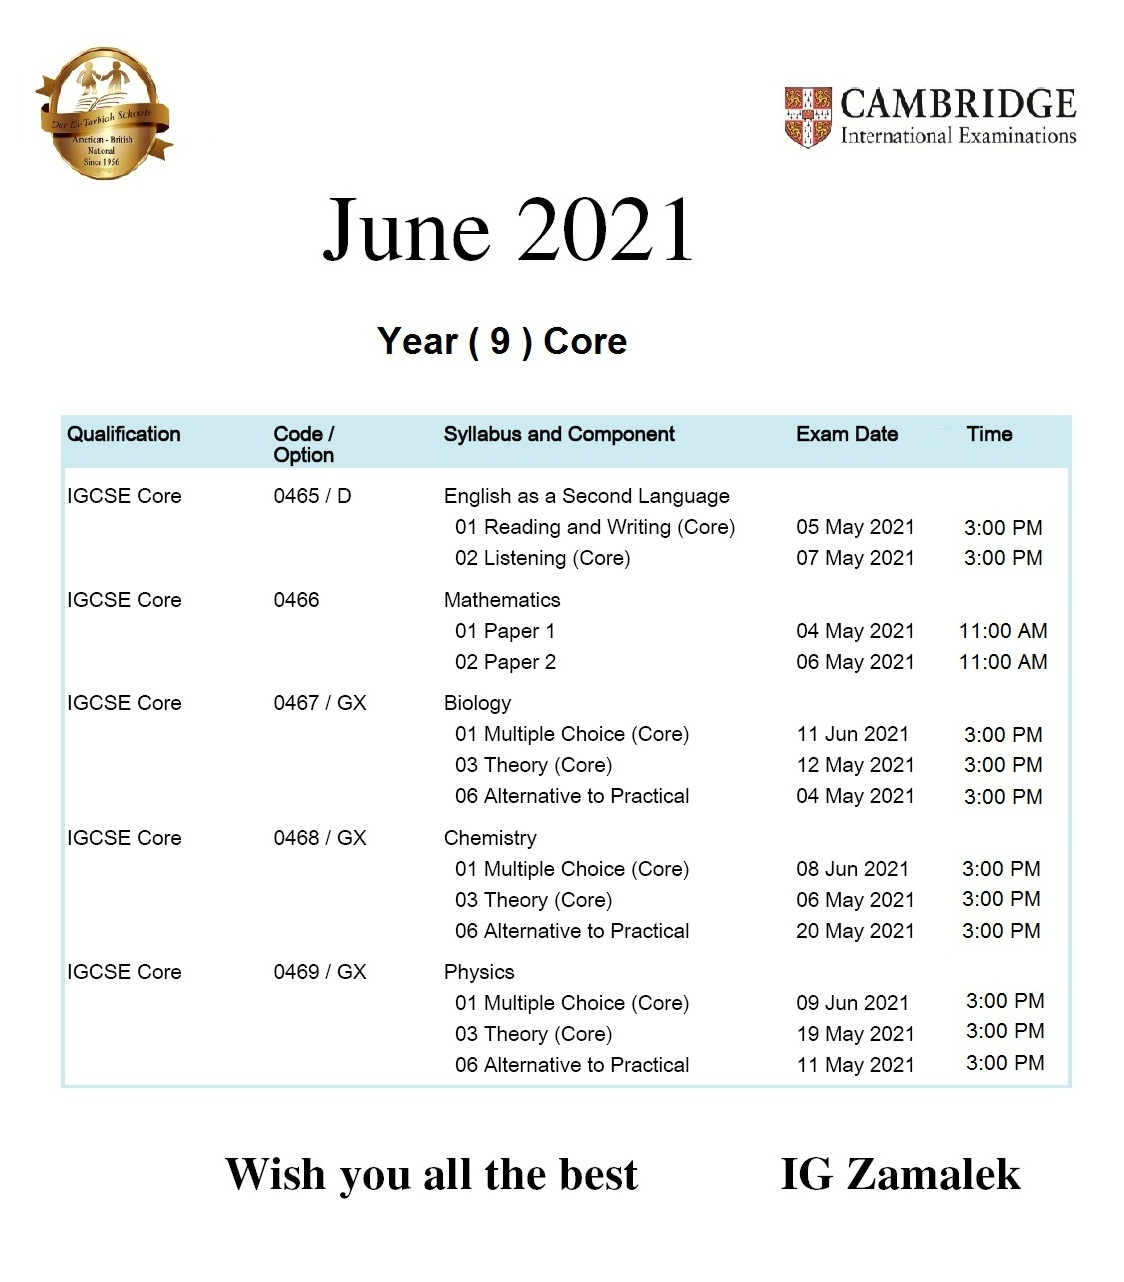 IG Zamalek - June 2021 Timetable